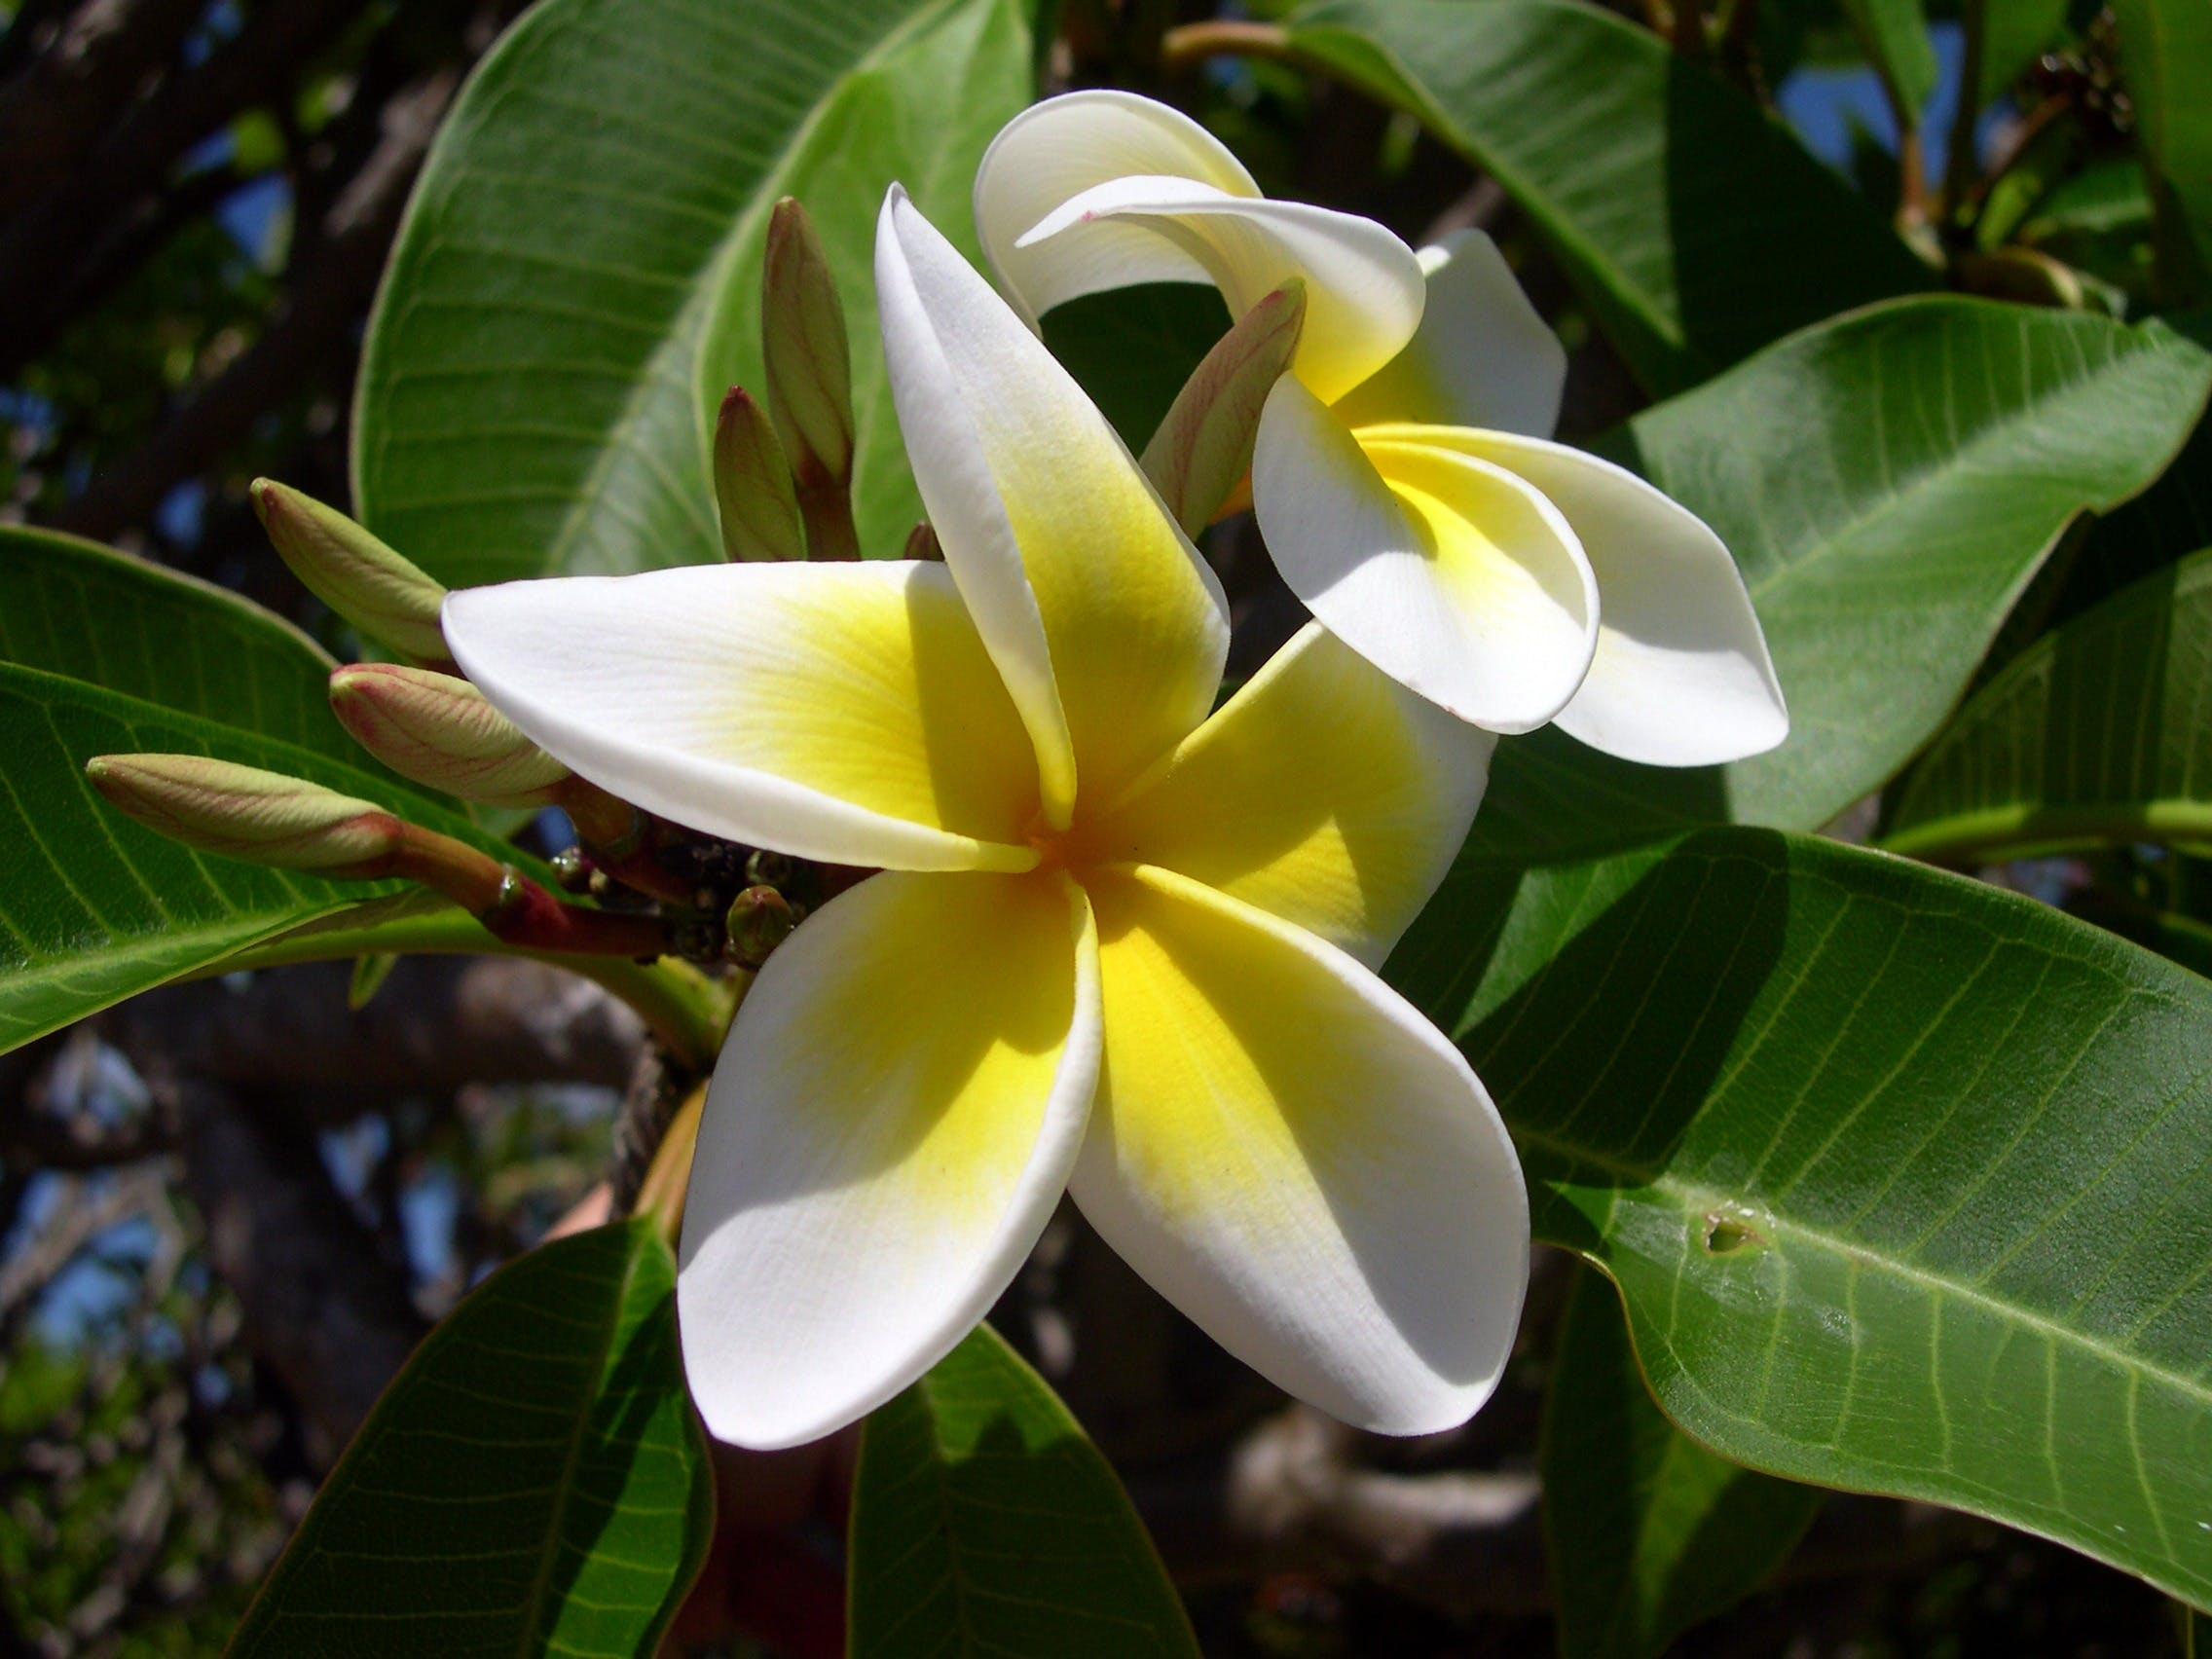 White Yellow Plumeria Flower in Bloom during Day Time